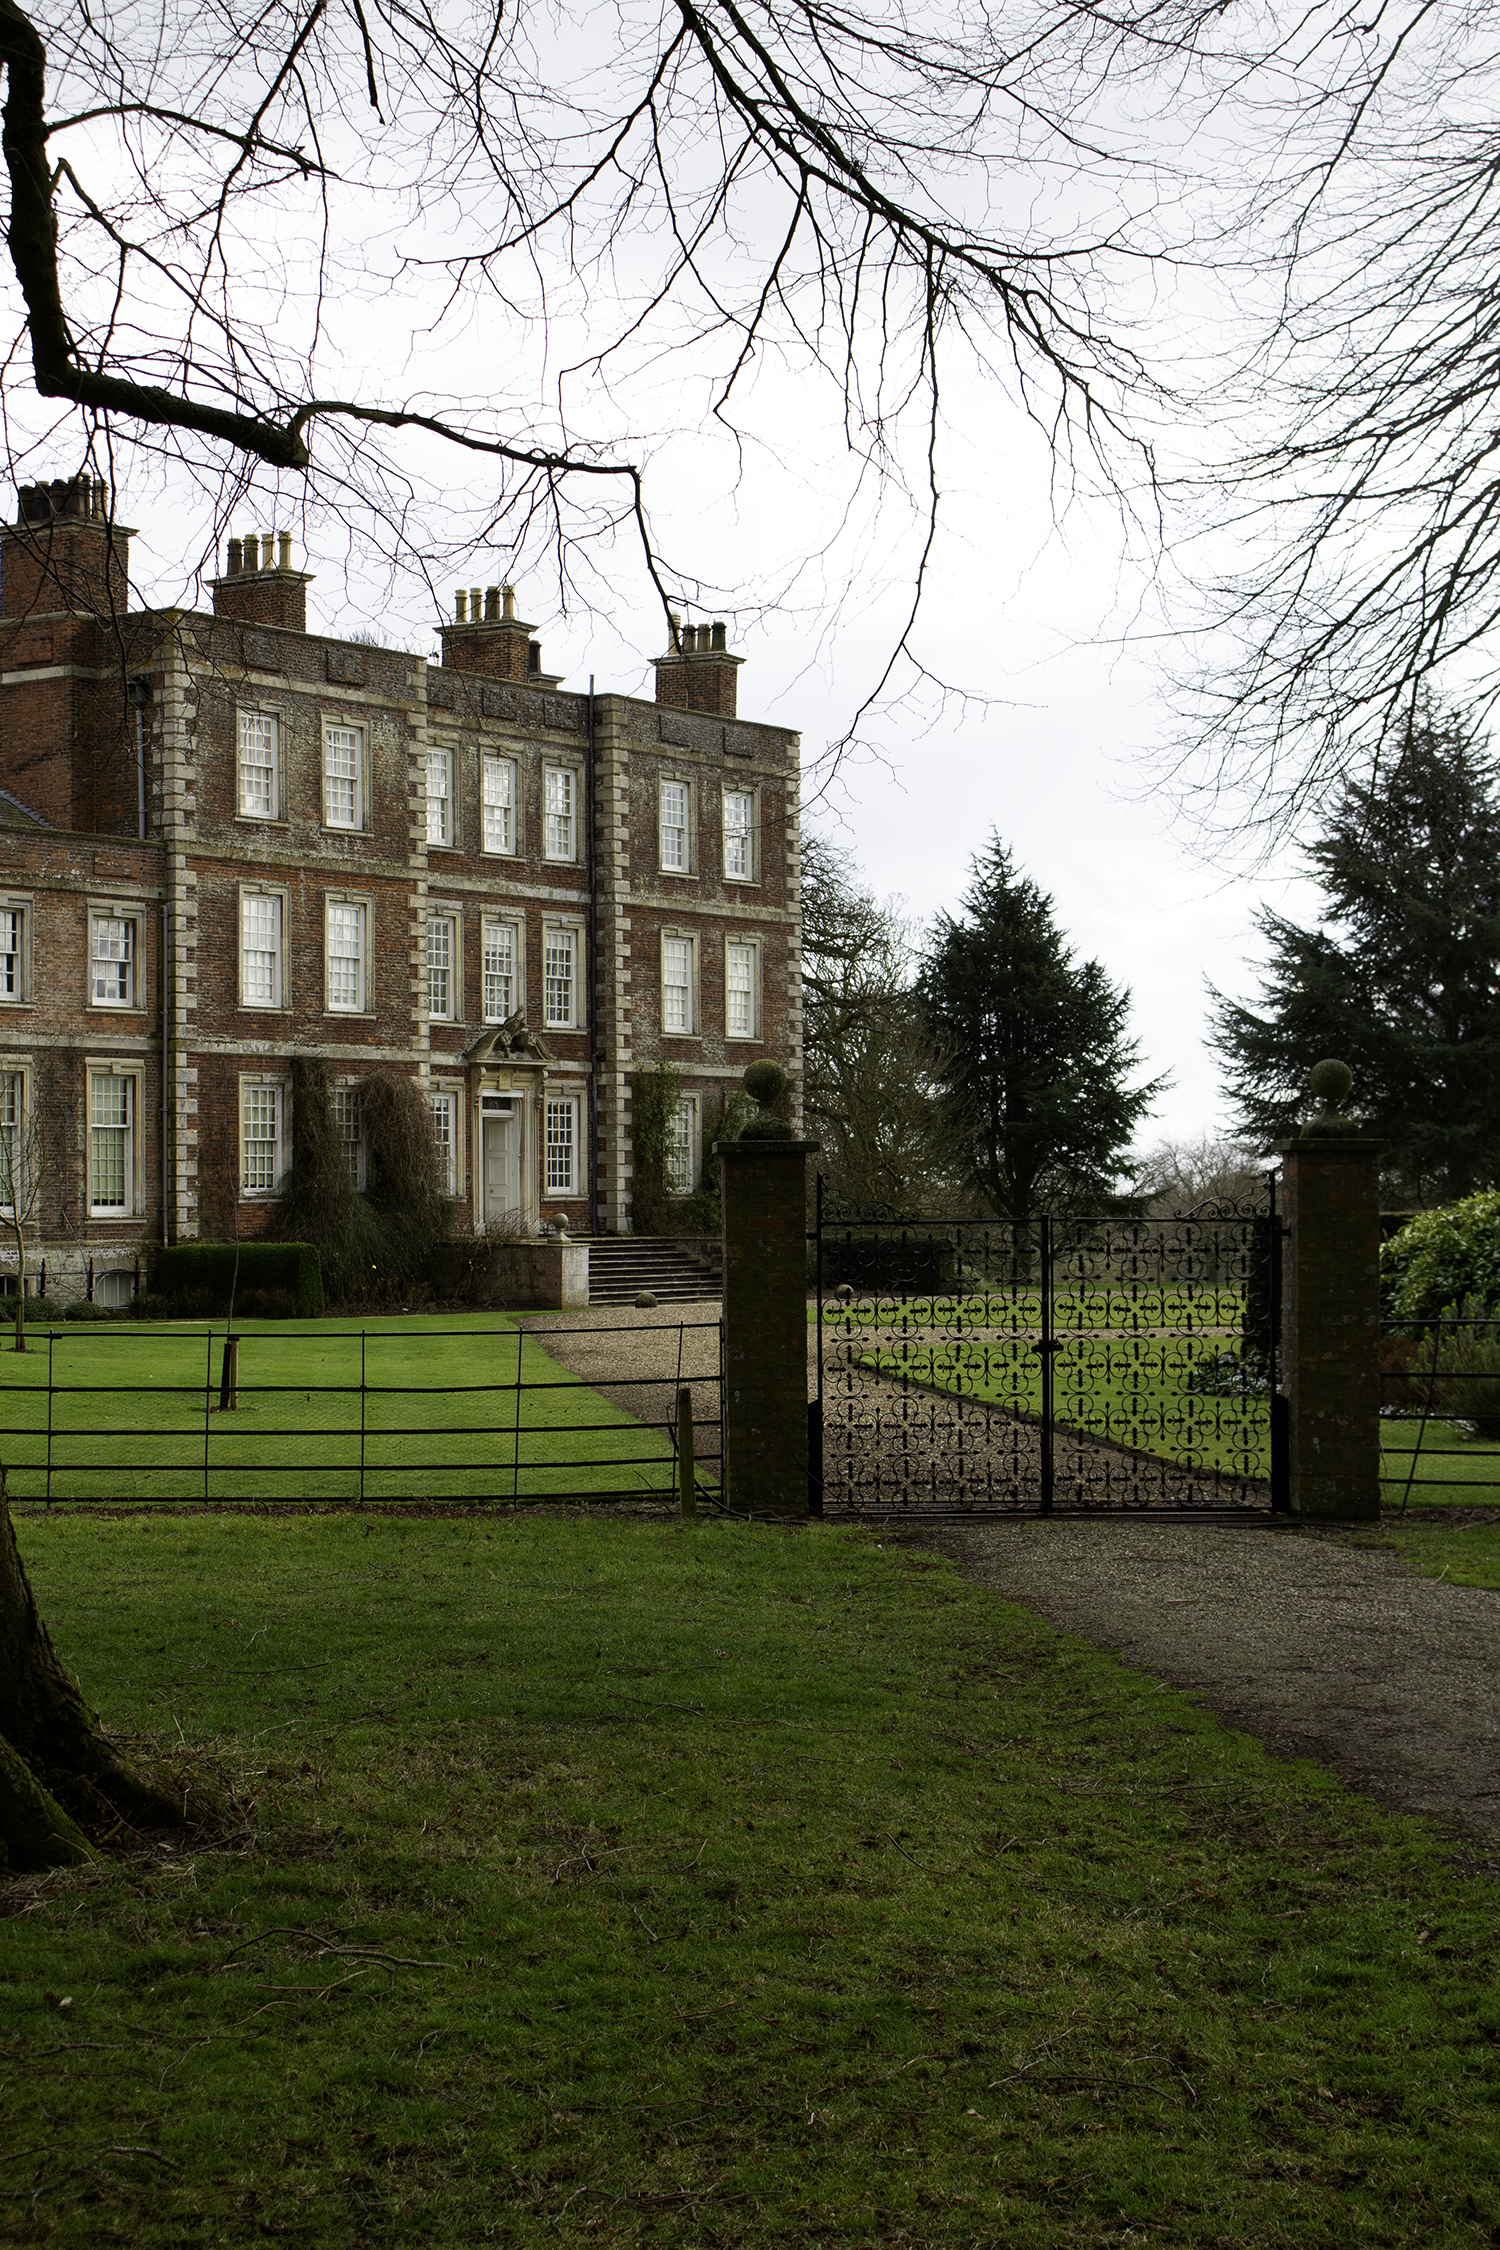 Images of Gunby Hall and Gardens